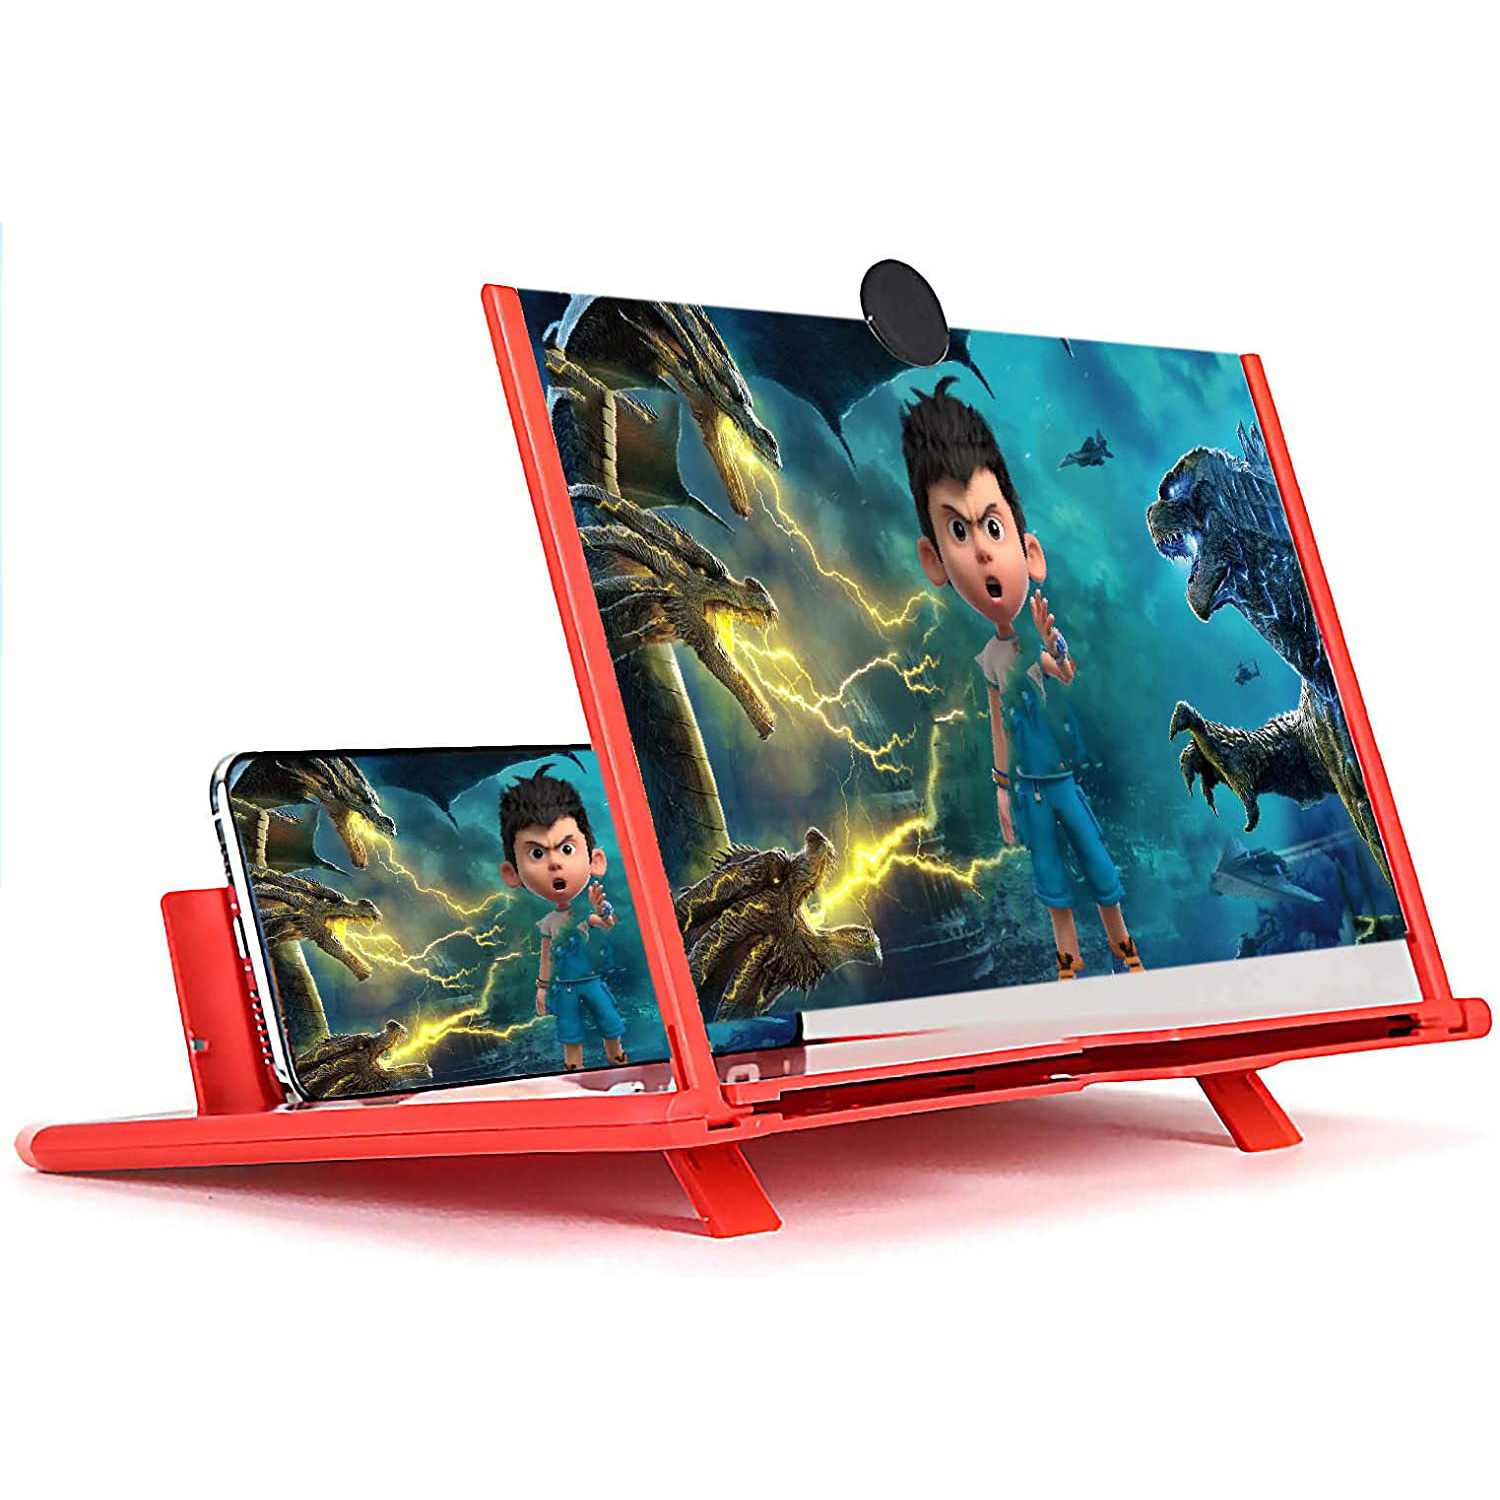 New Fashion 3D Screen Amplifier Mobile Phone Magnifying Glass HD Stand For Video Folding Screen Enlarged Eyes Protection Holder